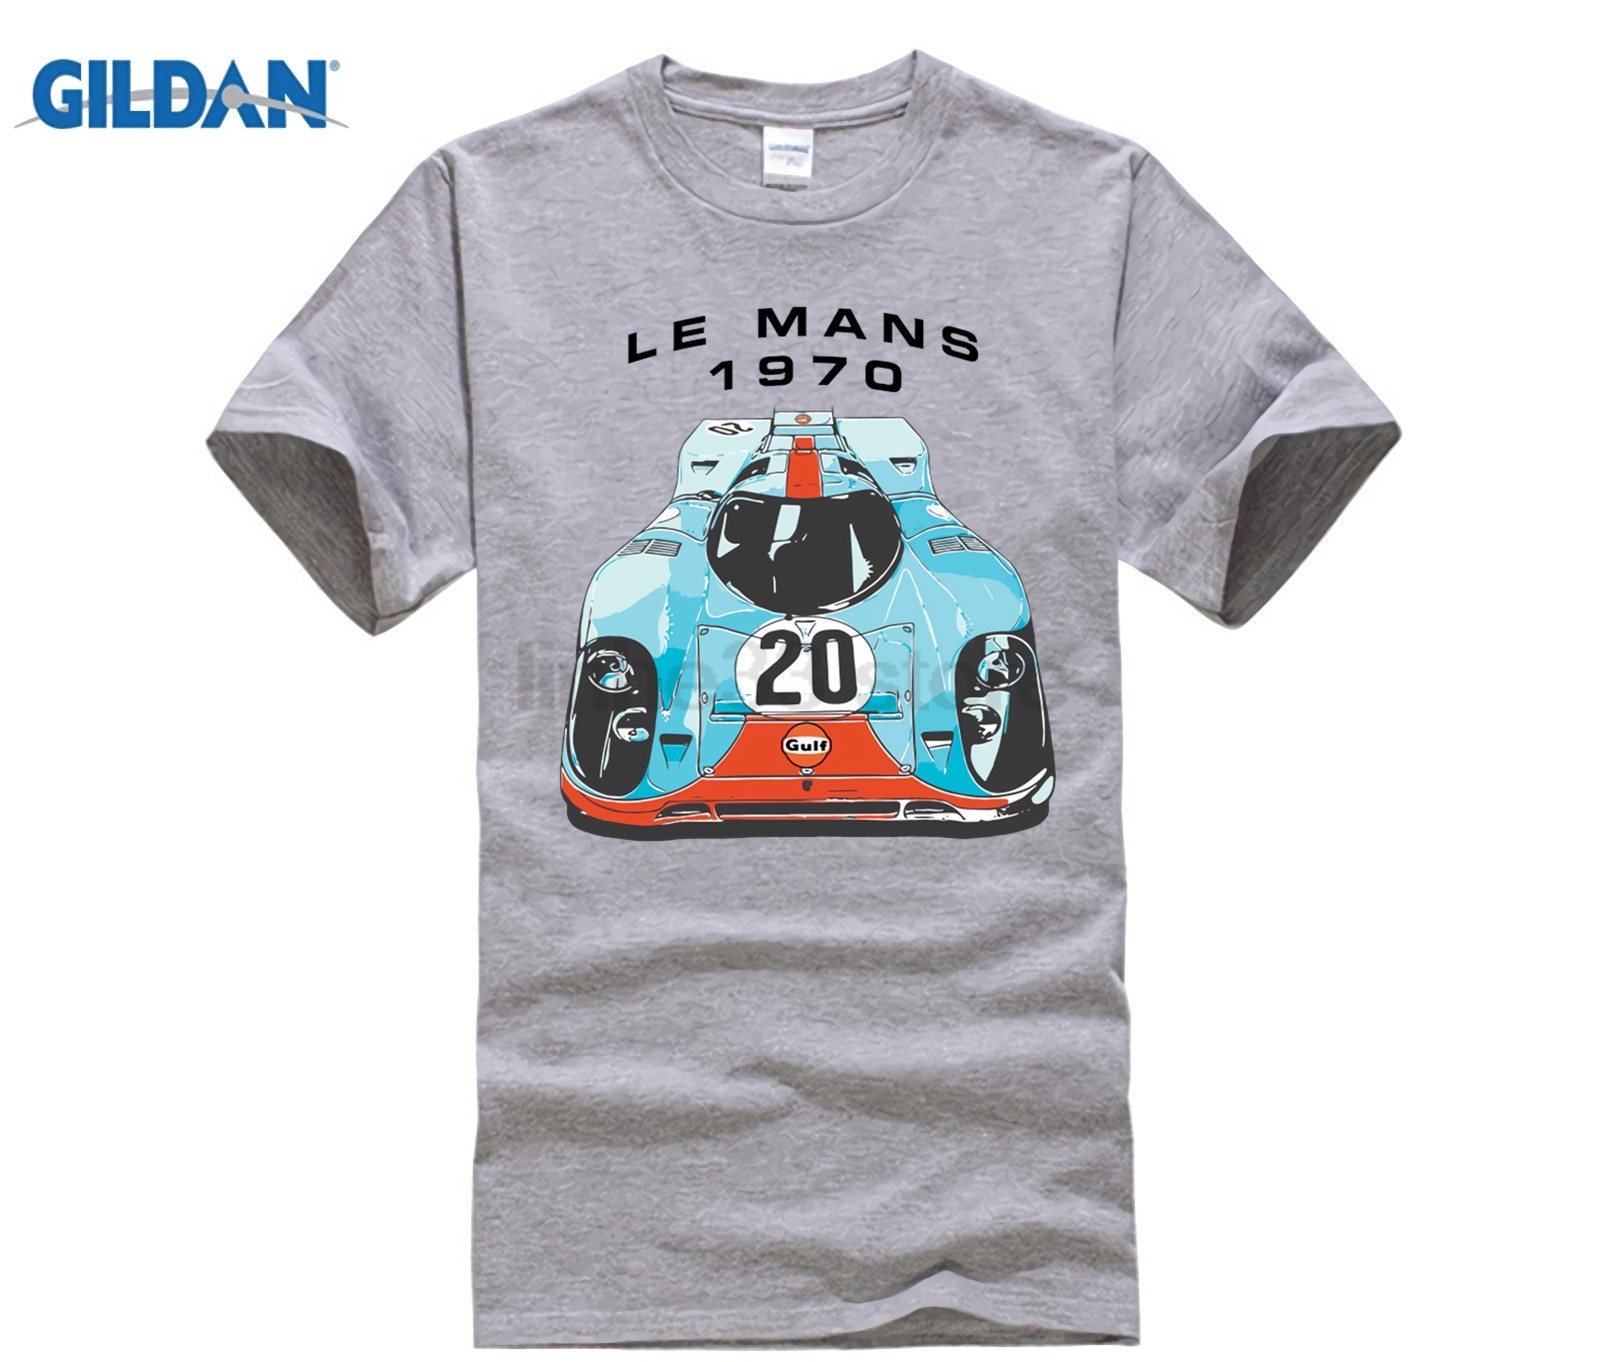 Le Mans T-Shirt Newest 2019 Summer Men T-Shirt Fashion Casual Short Sleeve Top O Neck Cotton Tees Tops Cotton Tee Shirt Present